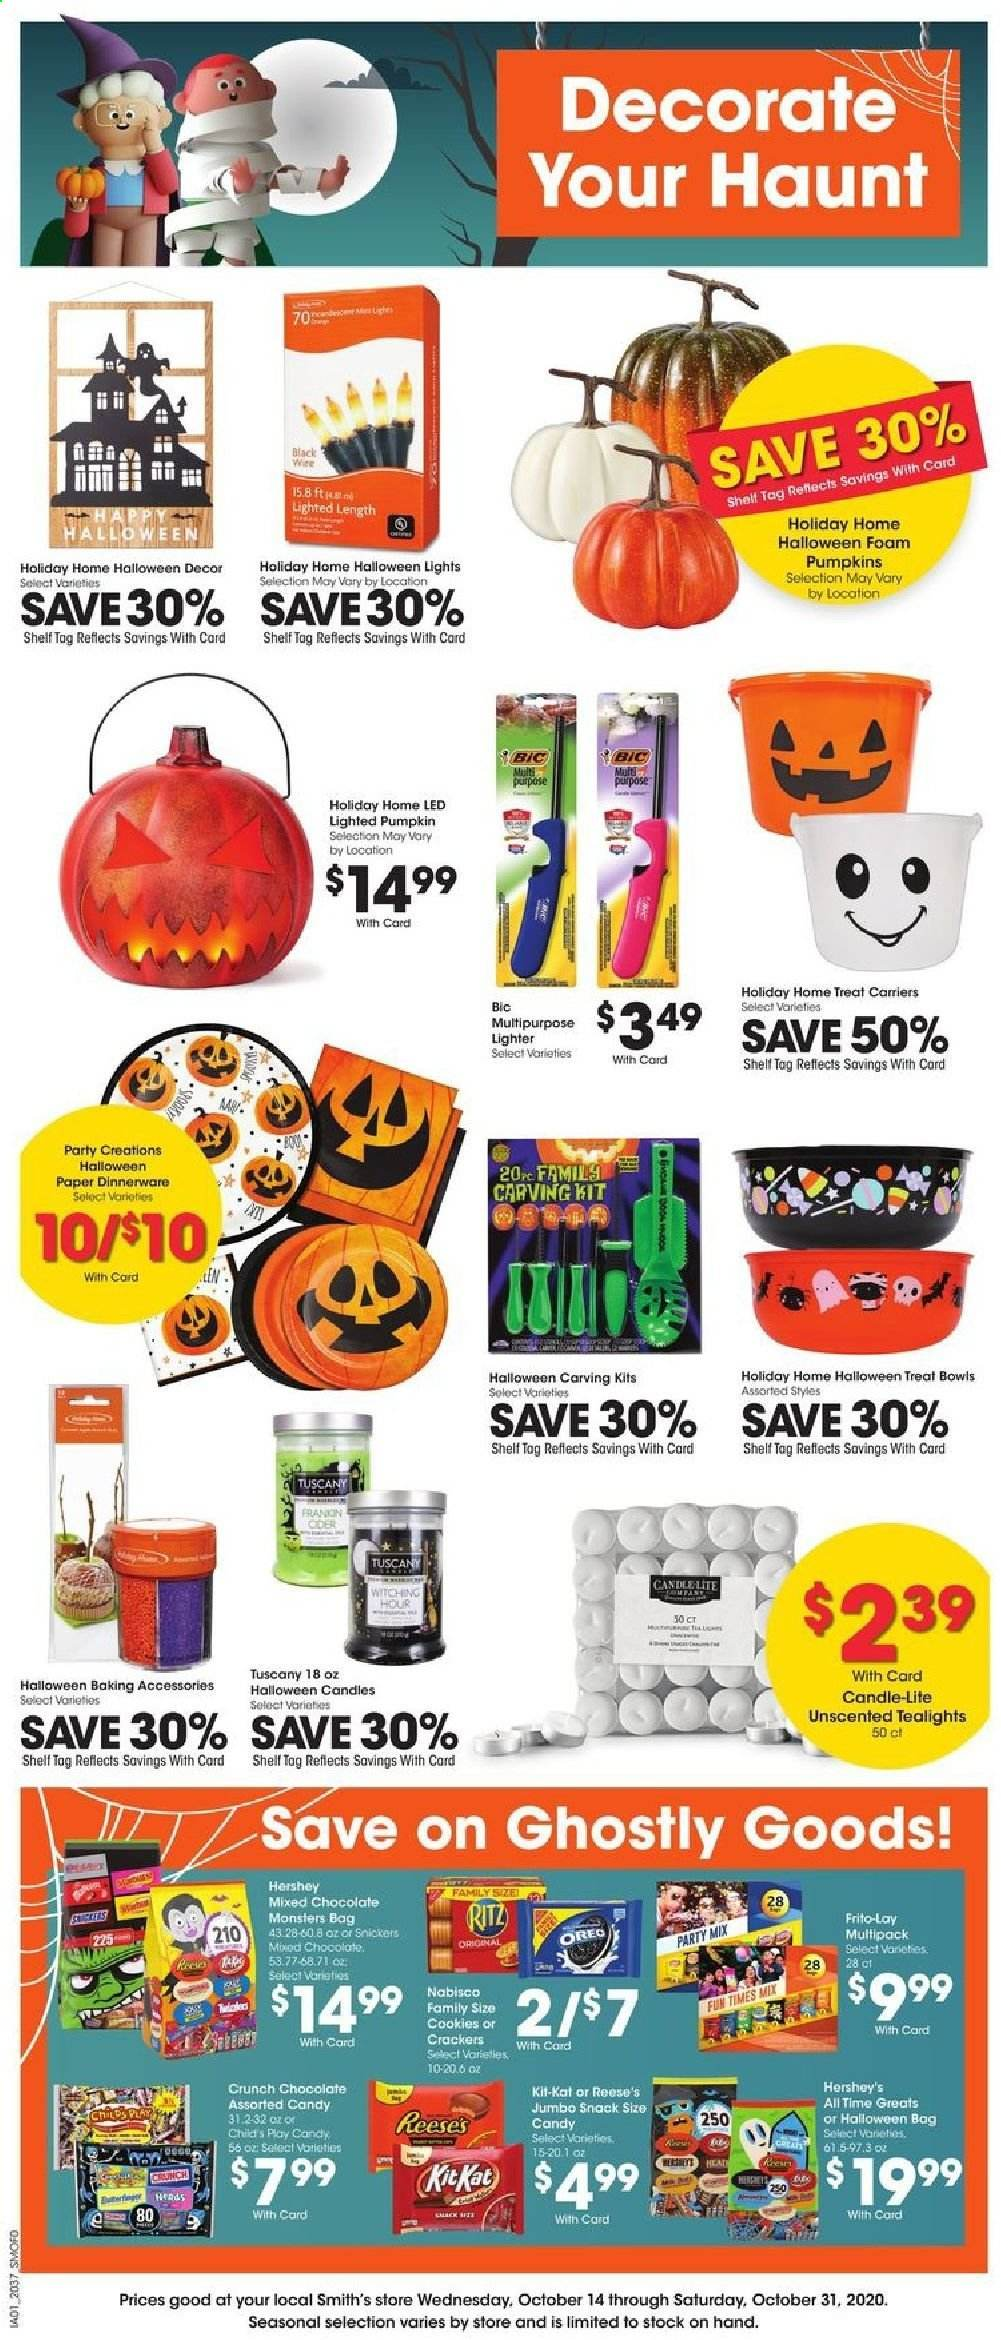 Smith's Flyer - 10.14.2020 - 10.31.2020 - Sales products - bag, bic, bowl, candle, cookies, crackers, foam, shelf, pumpkin, oreo, chocolate, candy, snack, reese, ritz, snickers, dinnerware, baking accessories, led. Page 1.